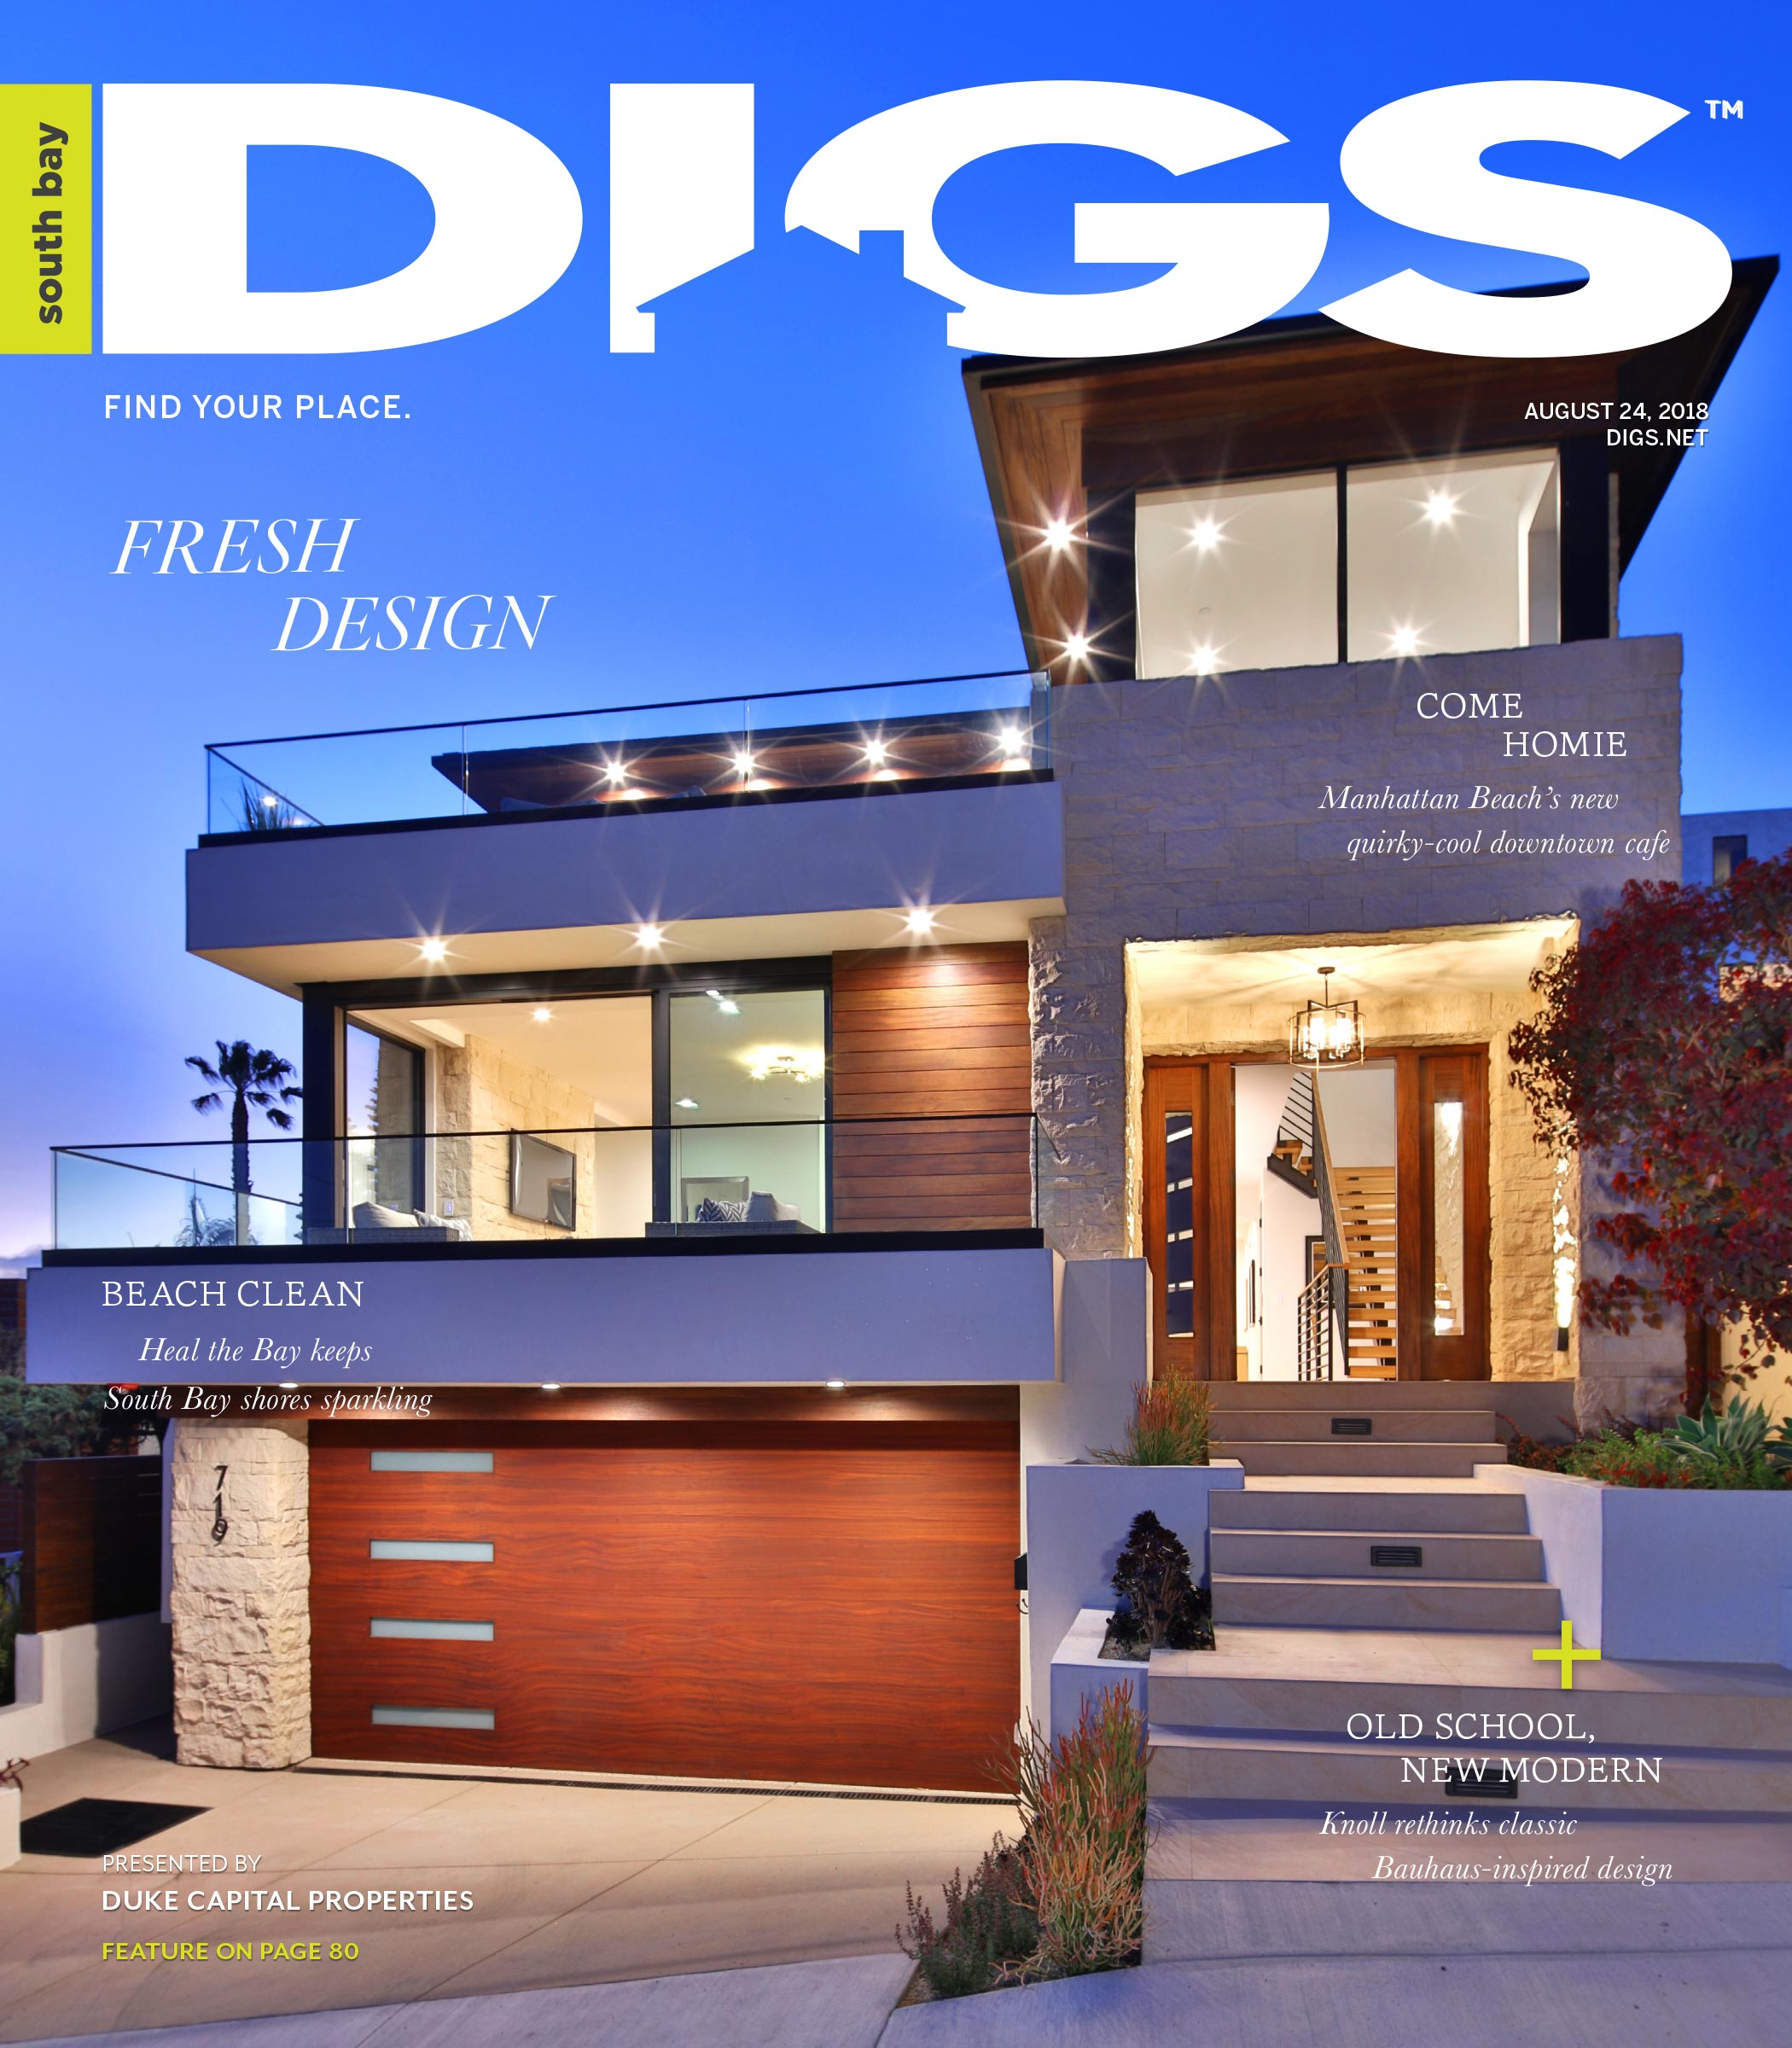 Digs, 1 of 3